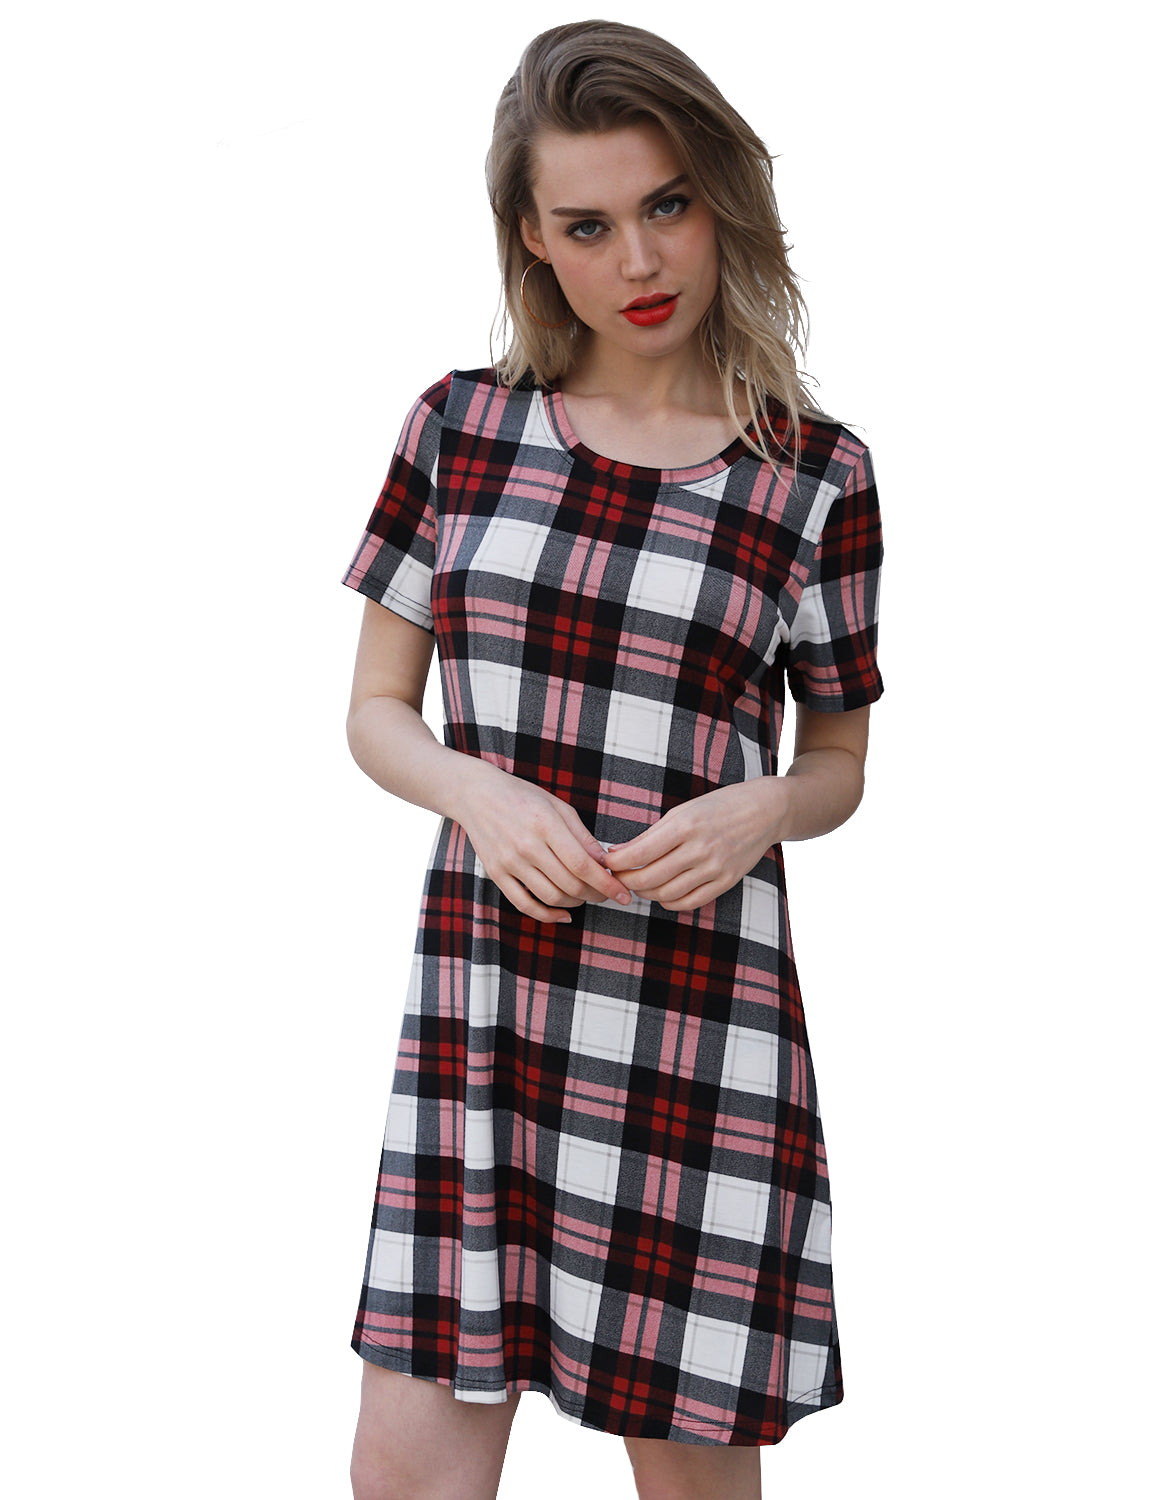 Plaid Scoop Neck Short Sleeve Swing Mini Dress